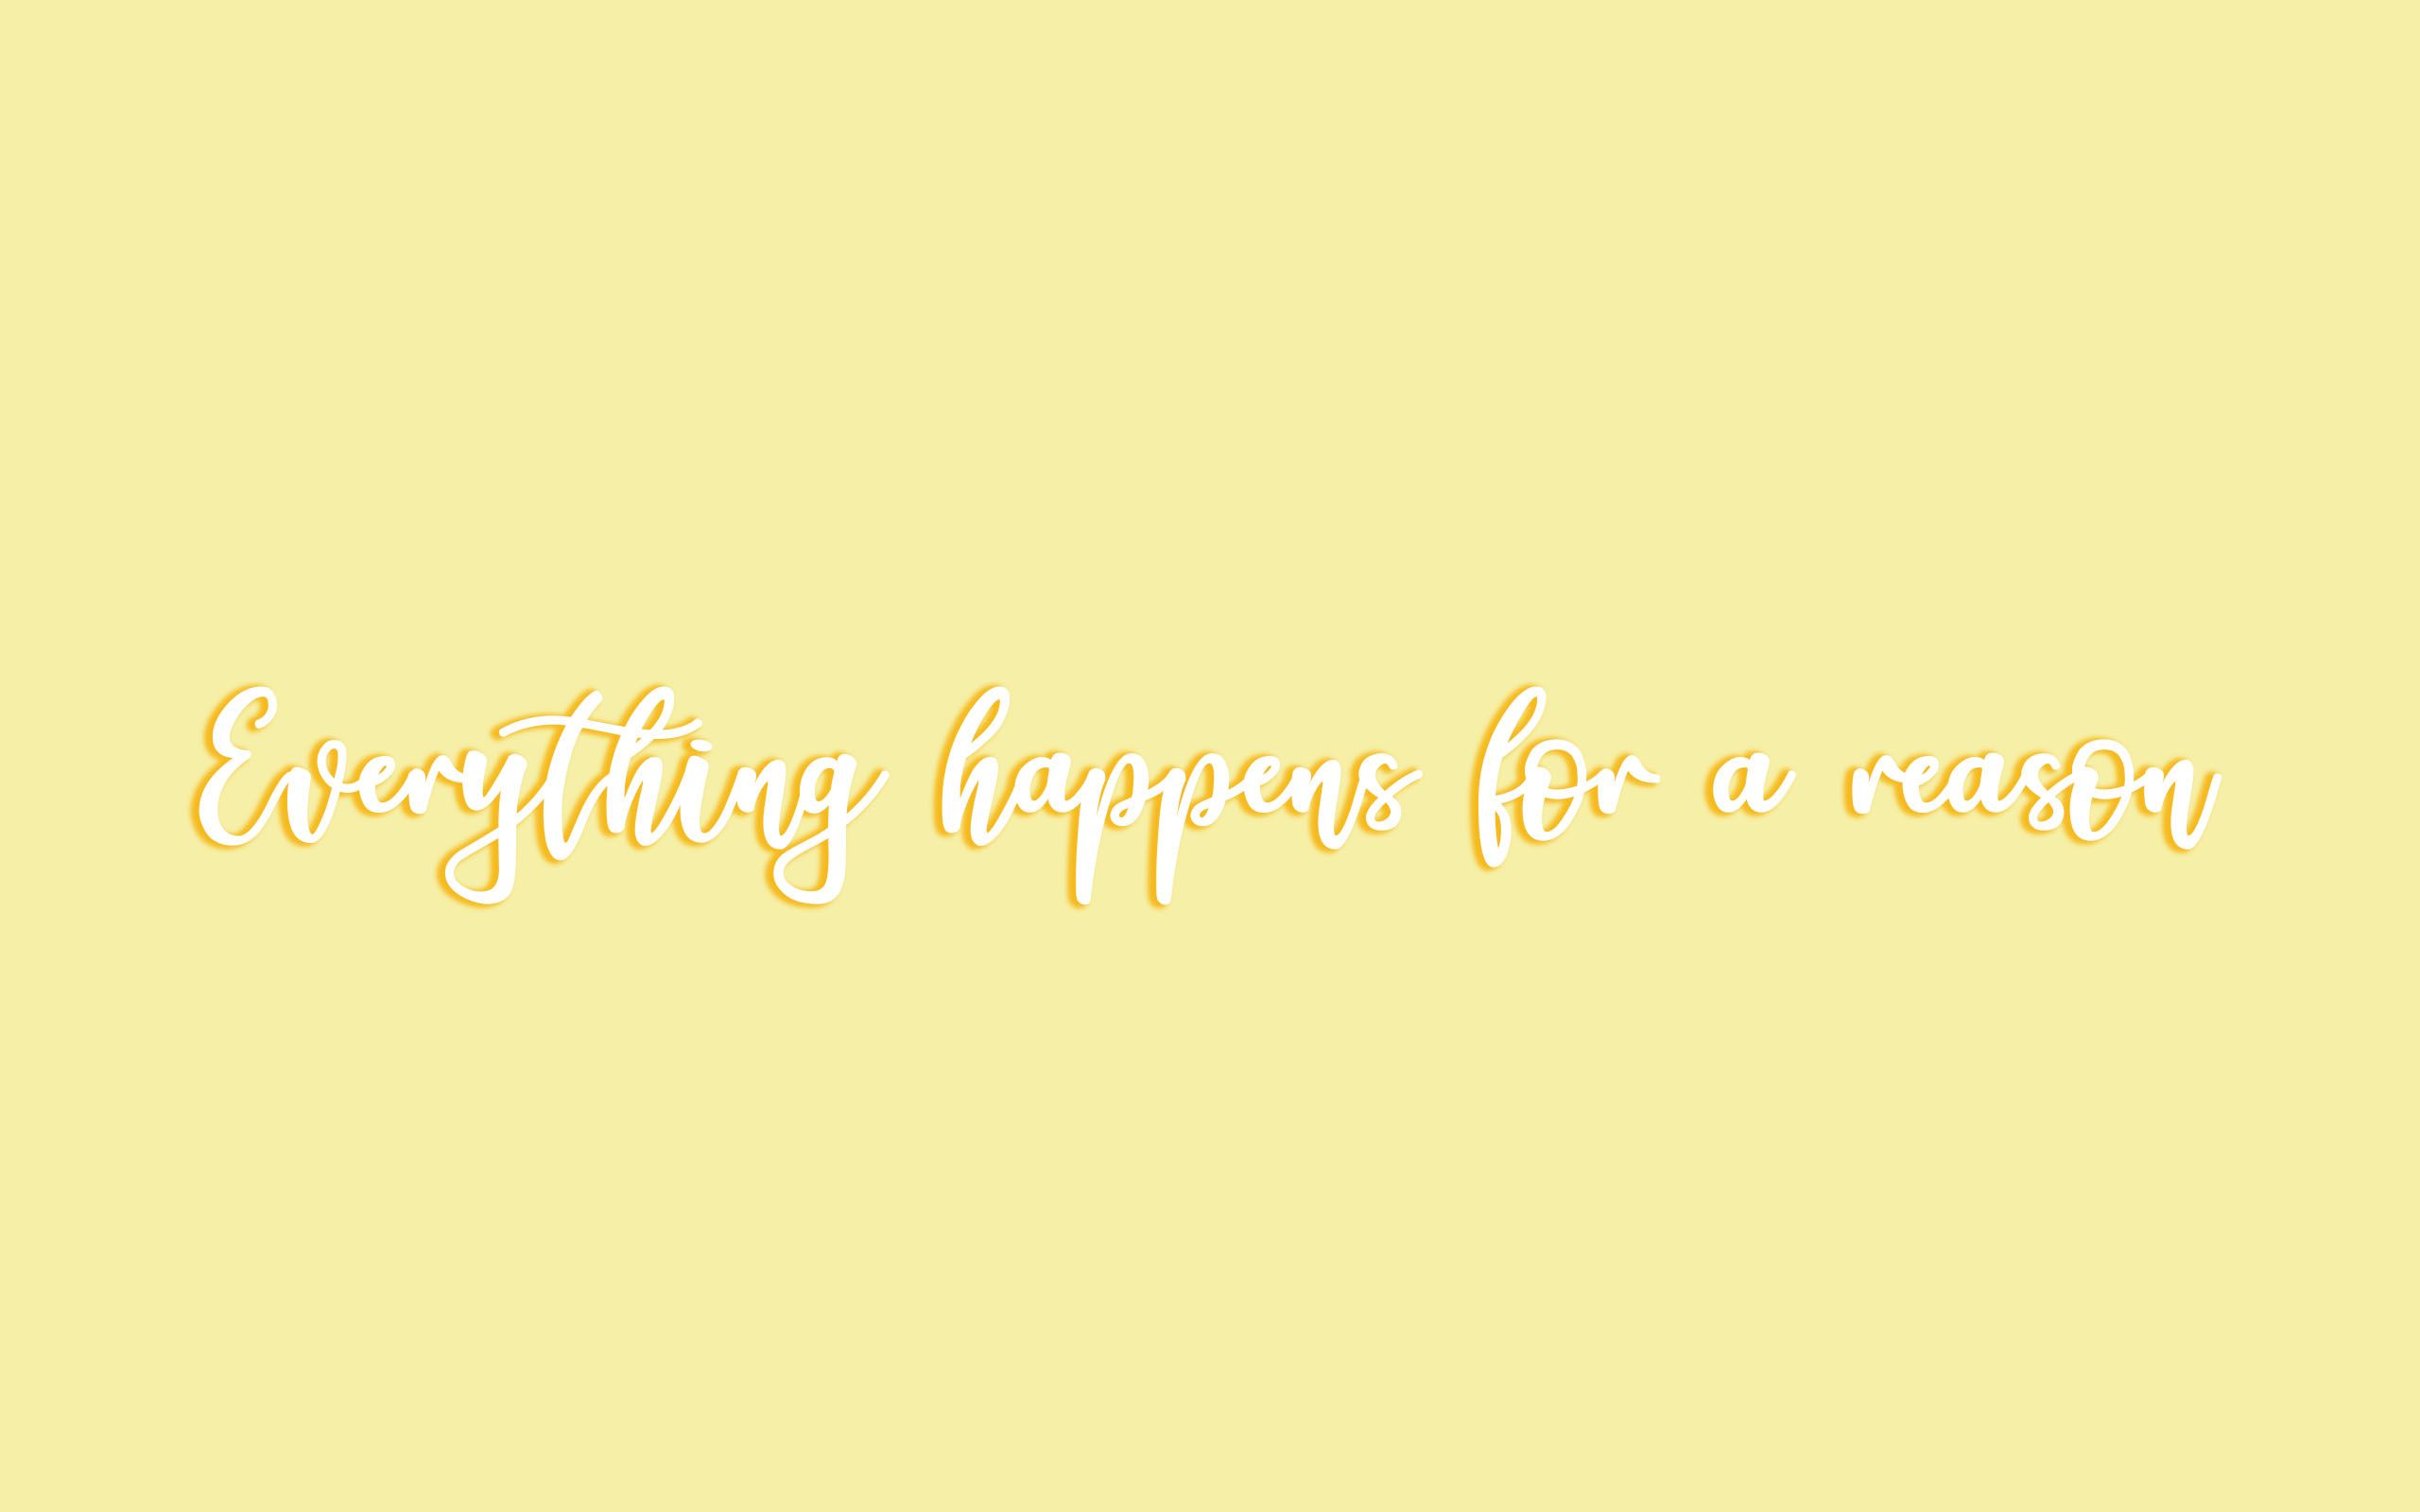 everything happens for a reason, macbook wallpaper, background, inspirational quote